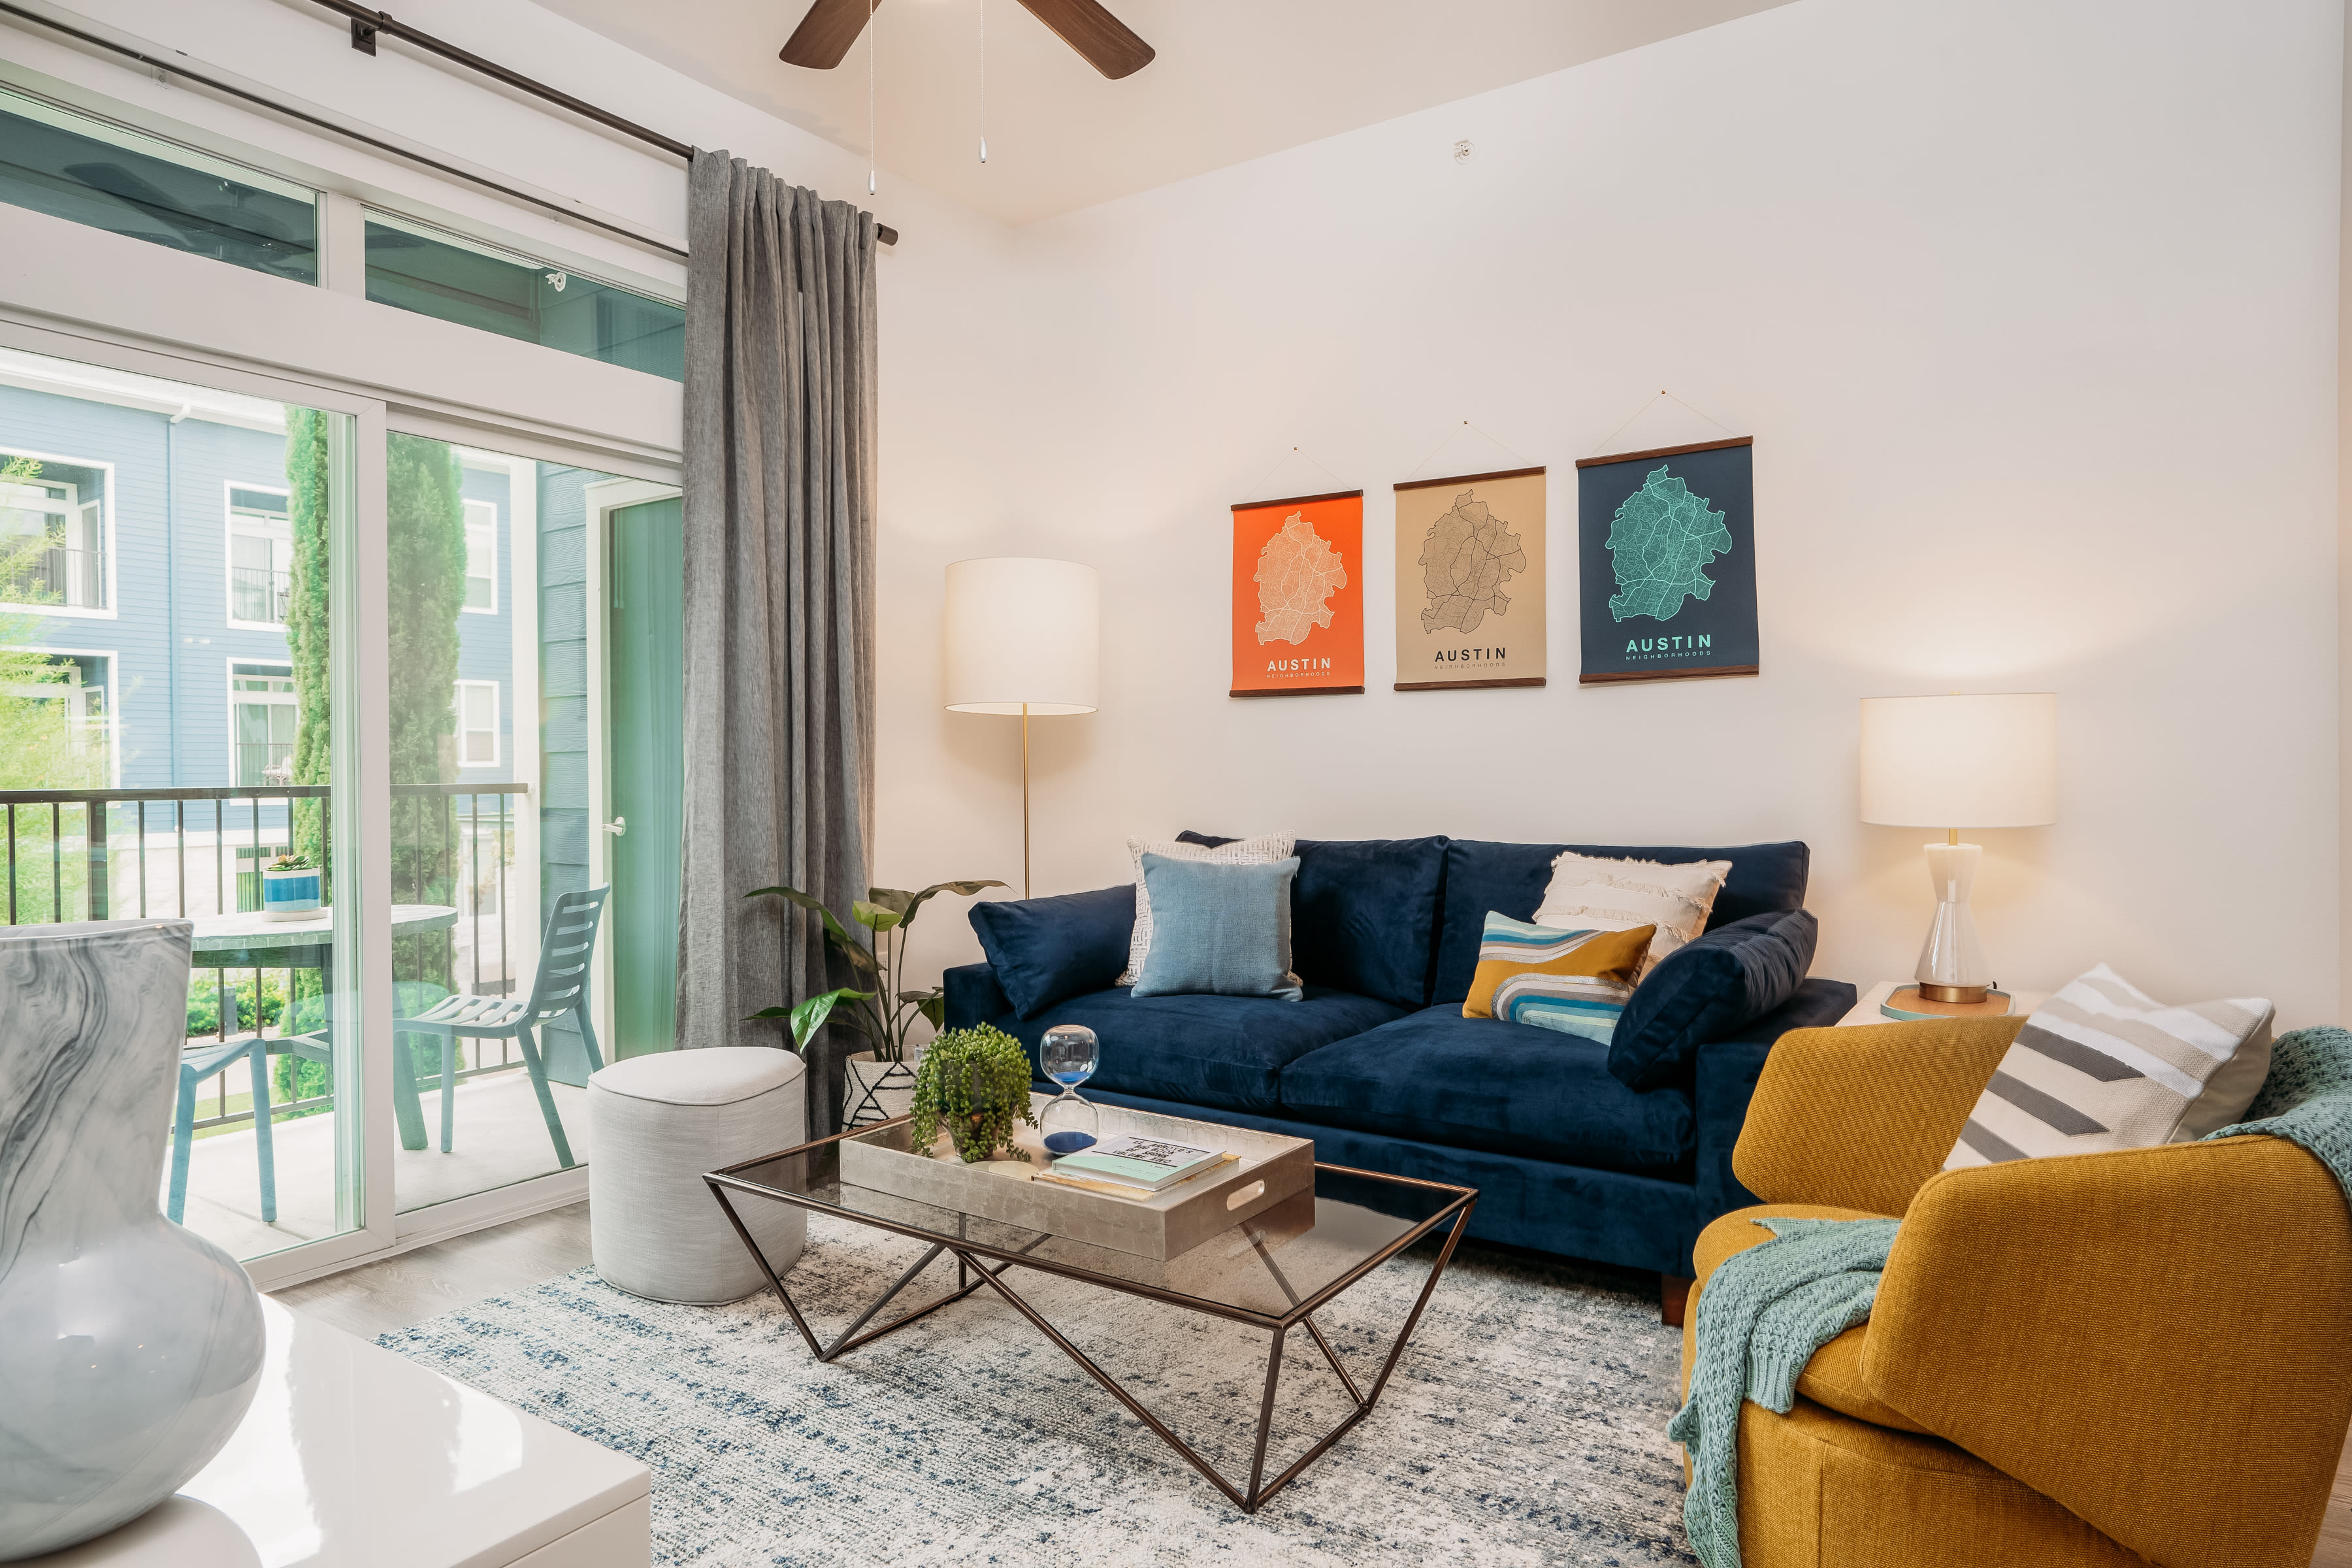 Spacious furnished living room with a glass slider door at Lakeshore Pearl in Austin, Texas